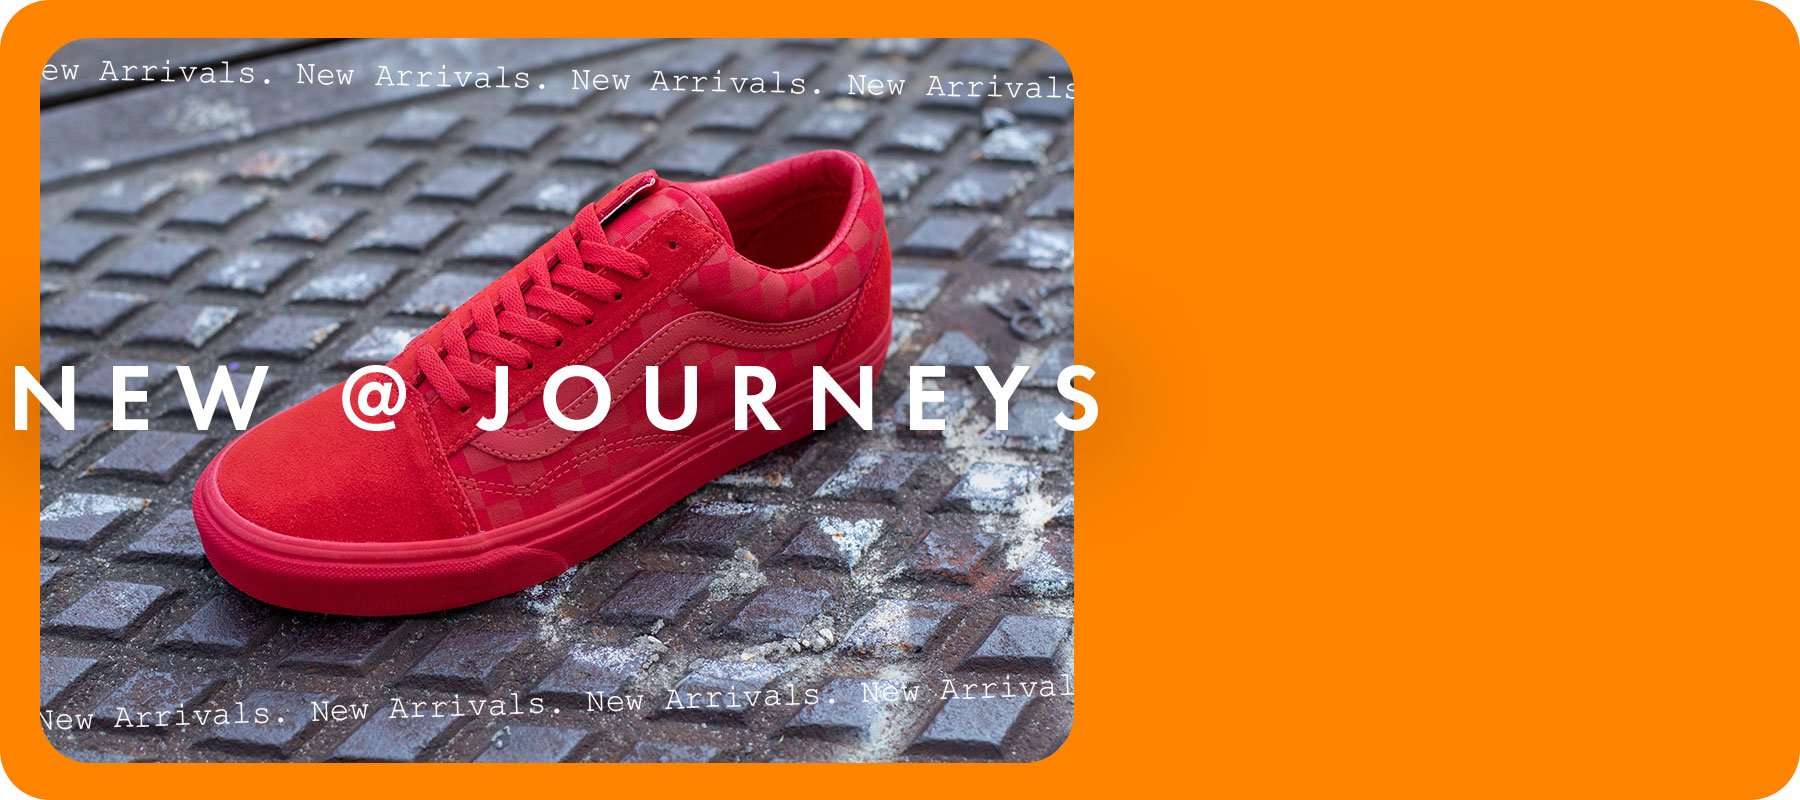 Shop new arrivals from your favorite brands at Journeys